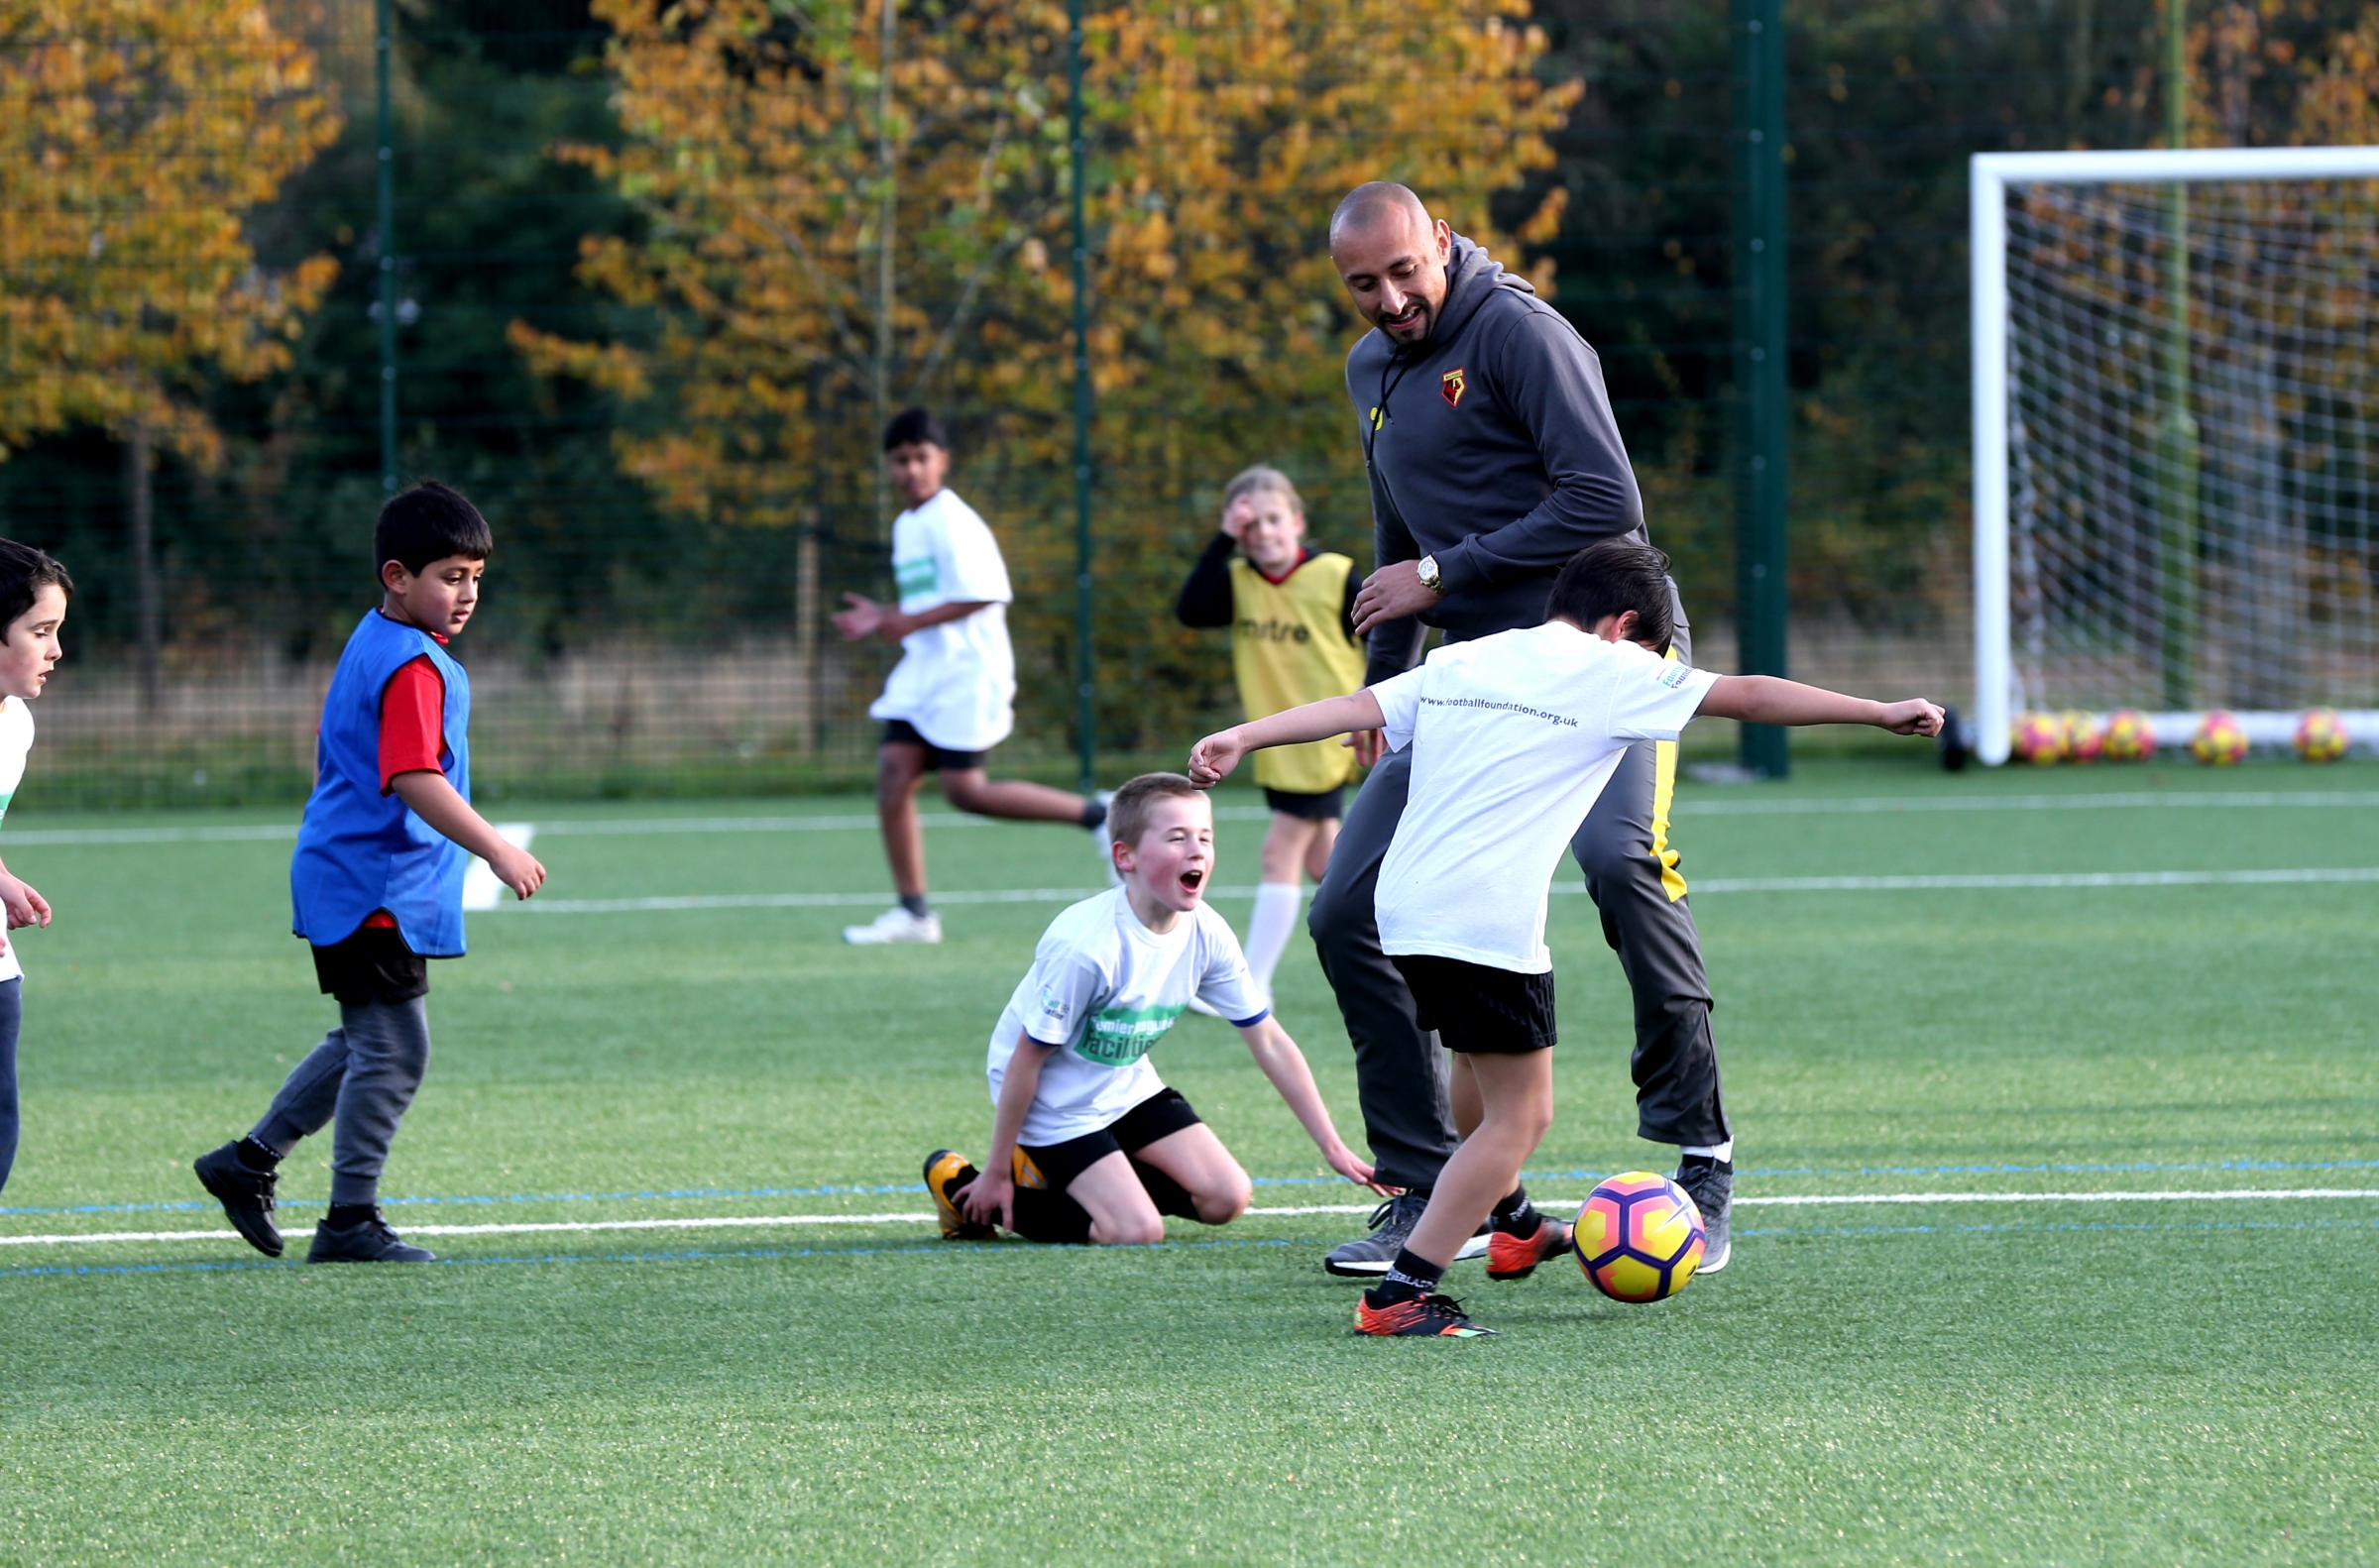 Community centre scores grassroots boost with new initiative